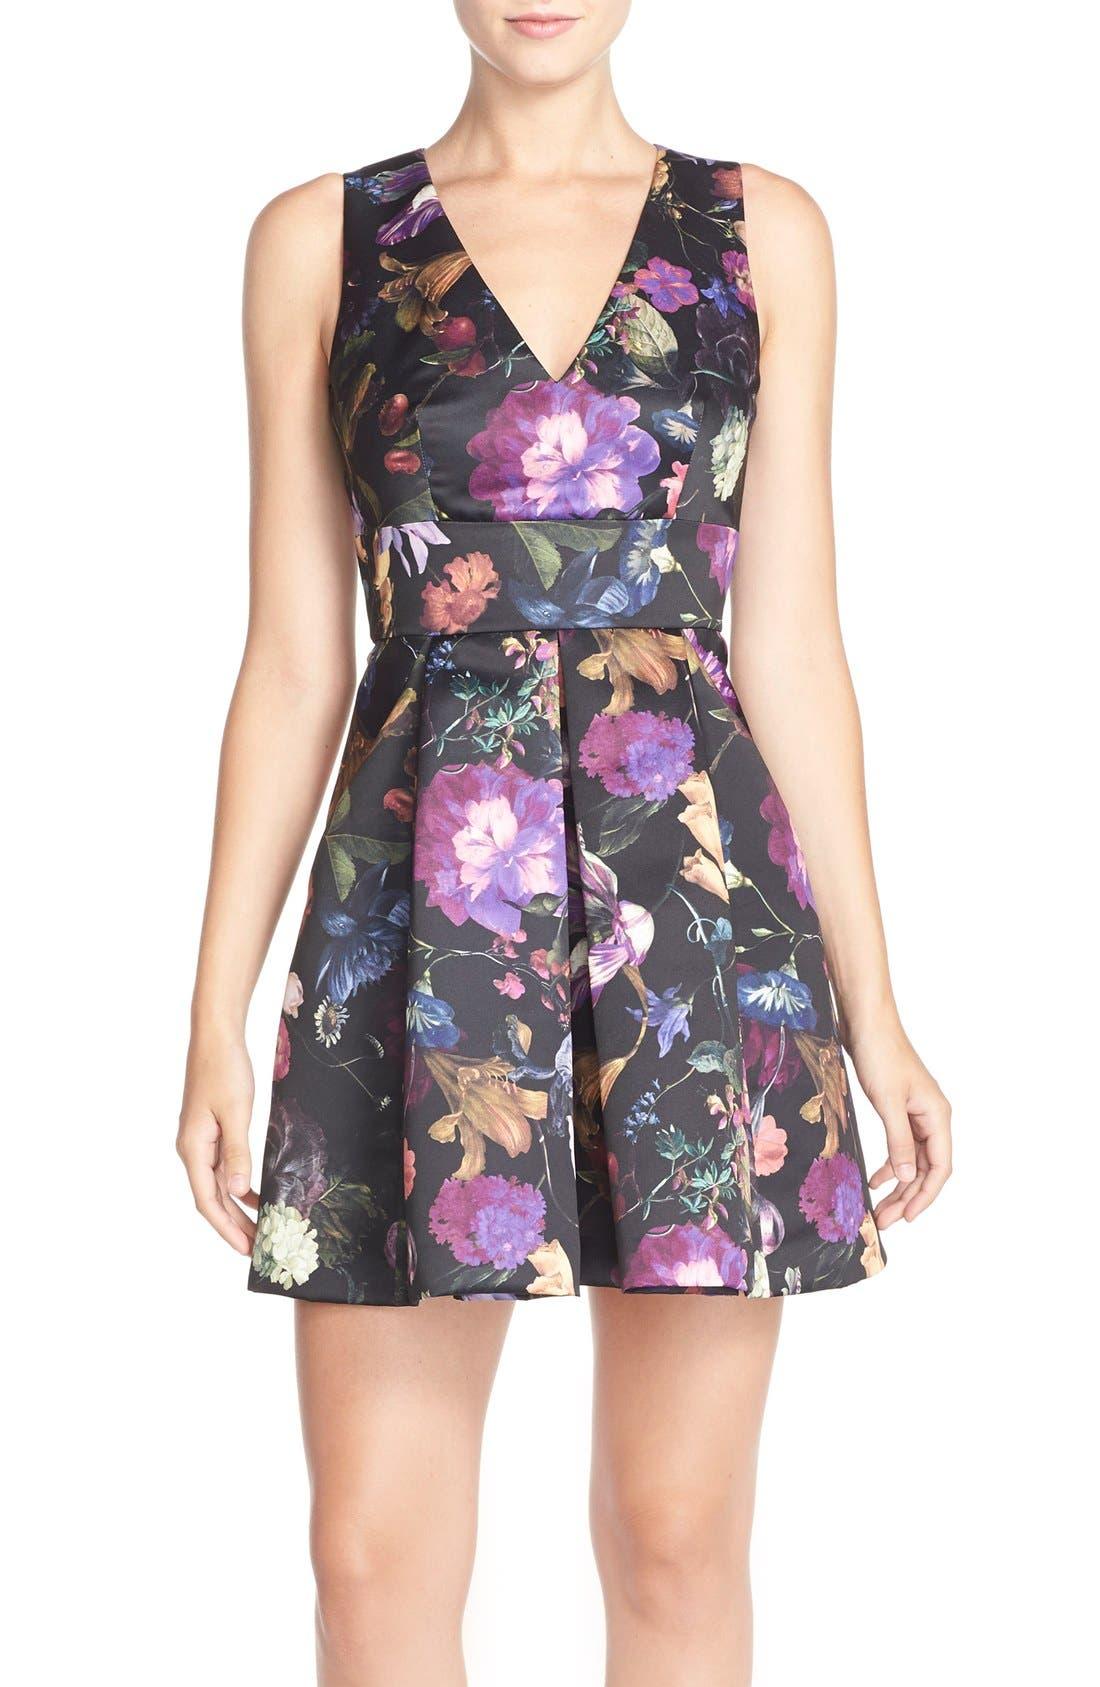 Cythia Rowley 'Winter' Floral Print Woven Fit & Flare Dress,                             Main thumbnail 1, color,                             009